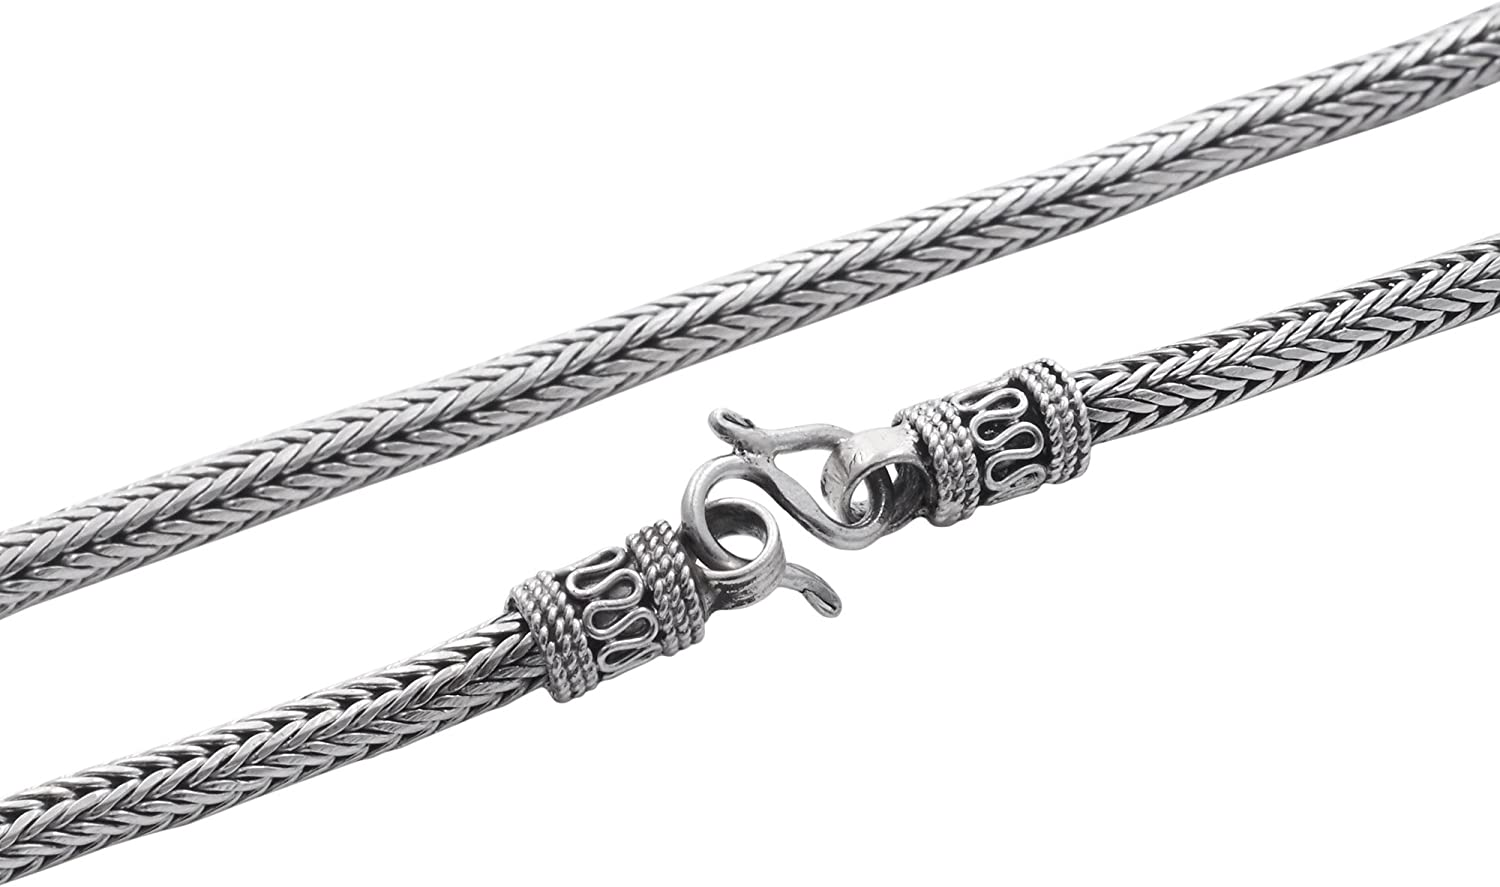 2.5 MM MADE IN ITALY 18K WHITE GOLD CHAIN NECKLACE BRAID ROPE LINK 17.72 INCHES